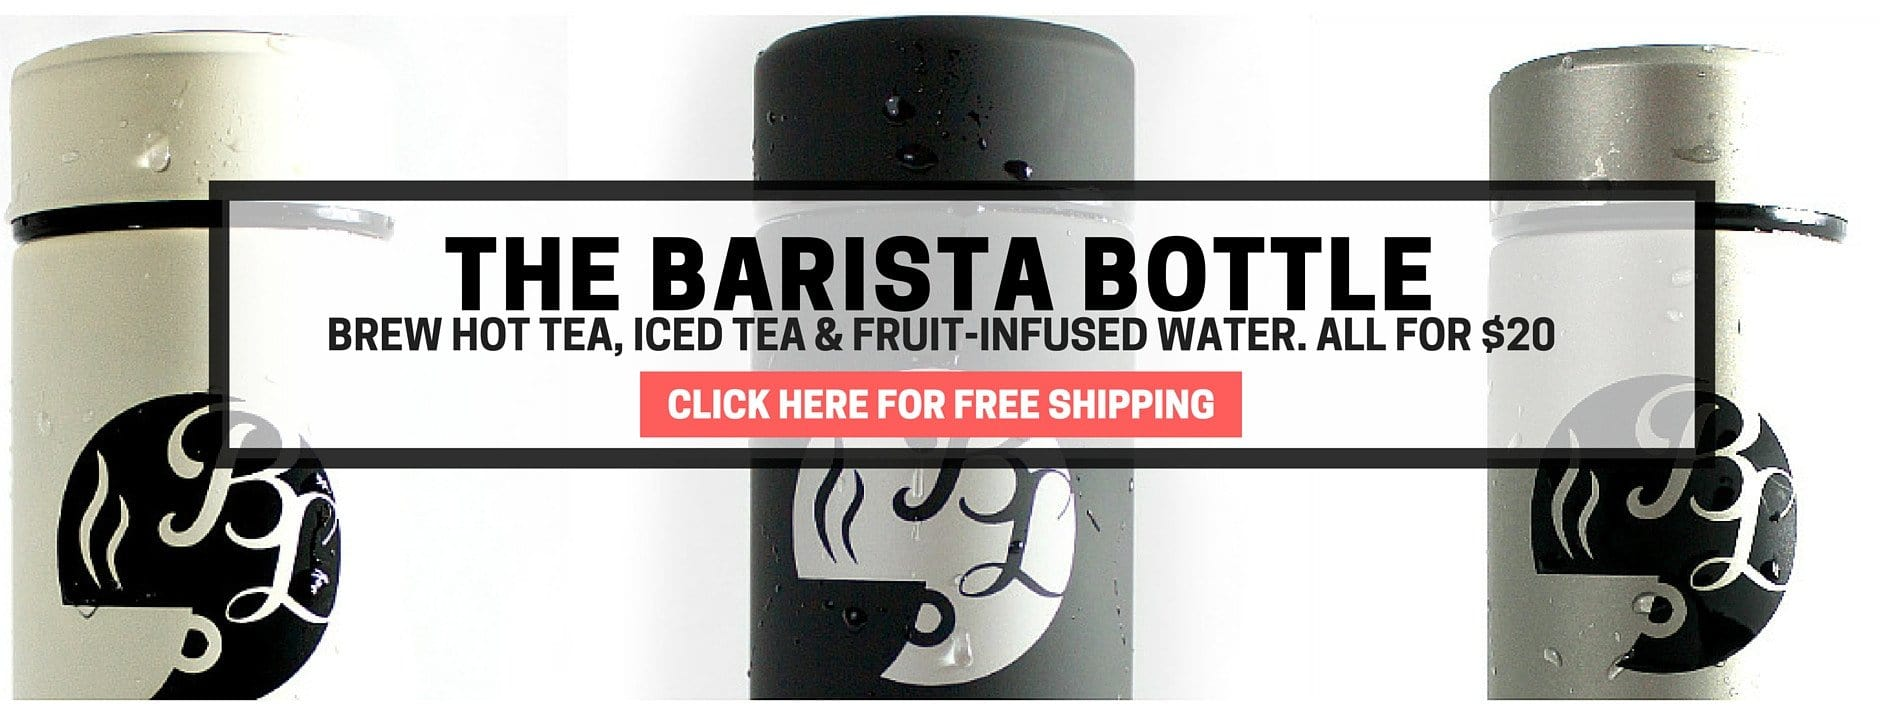 Best Stainless Steel Water Bottle Barista Life Barista Bottle